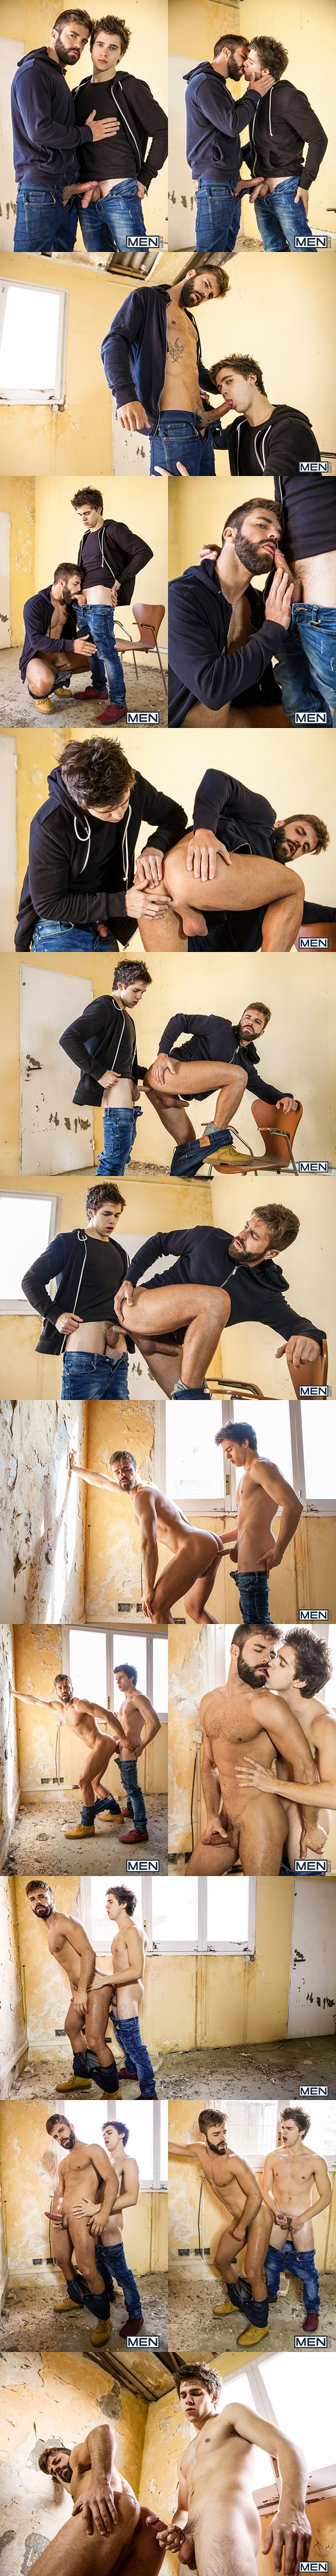 Will Braun fucks rugged handsome Hector De Silva in Lost Boys Part 2 at Drillmyhole 02